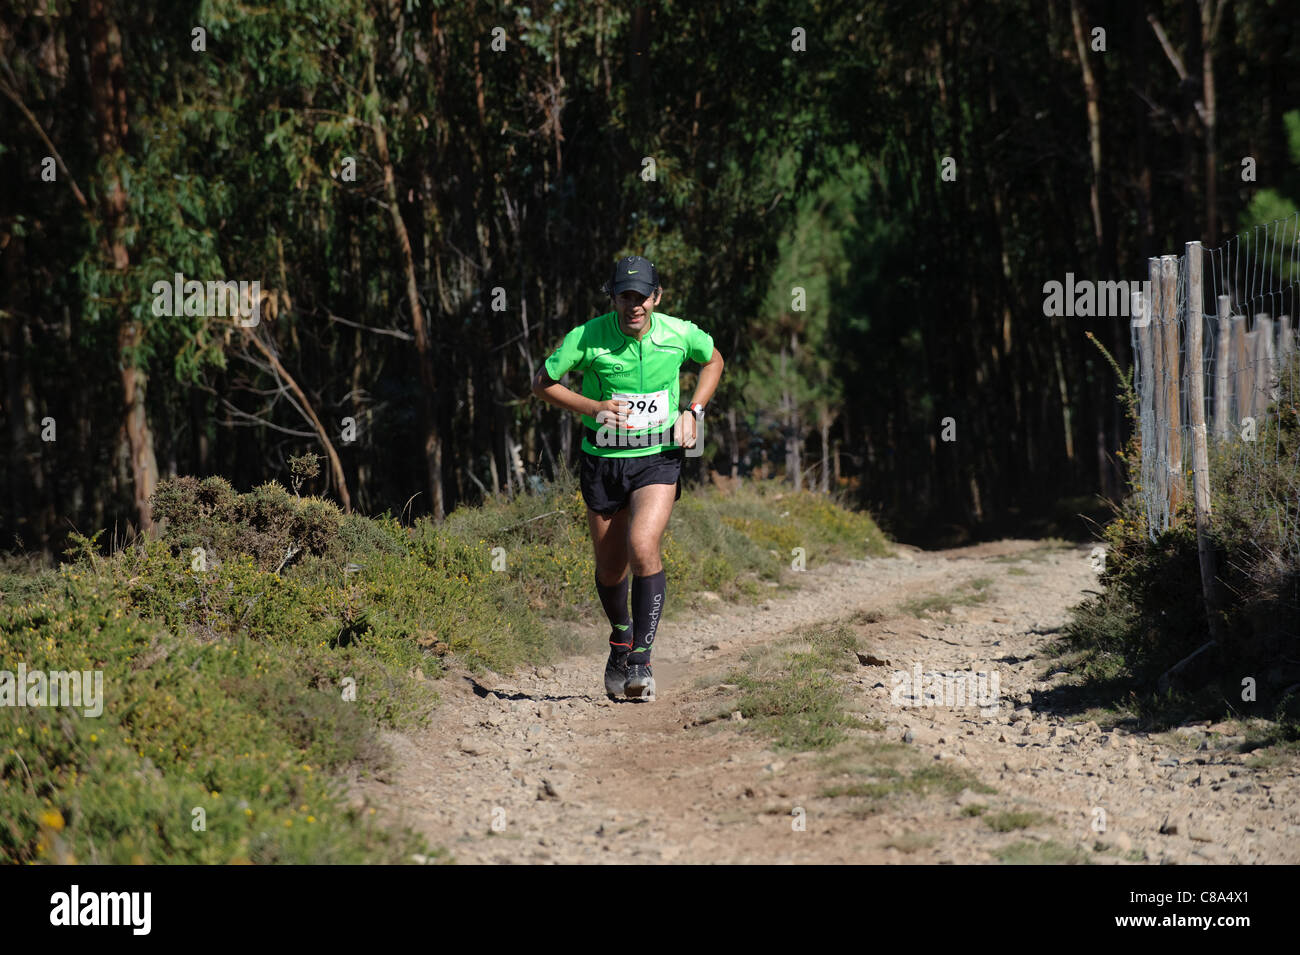 Man running in cross country trail race - Stock Image